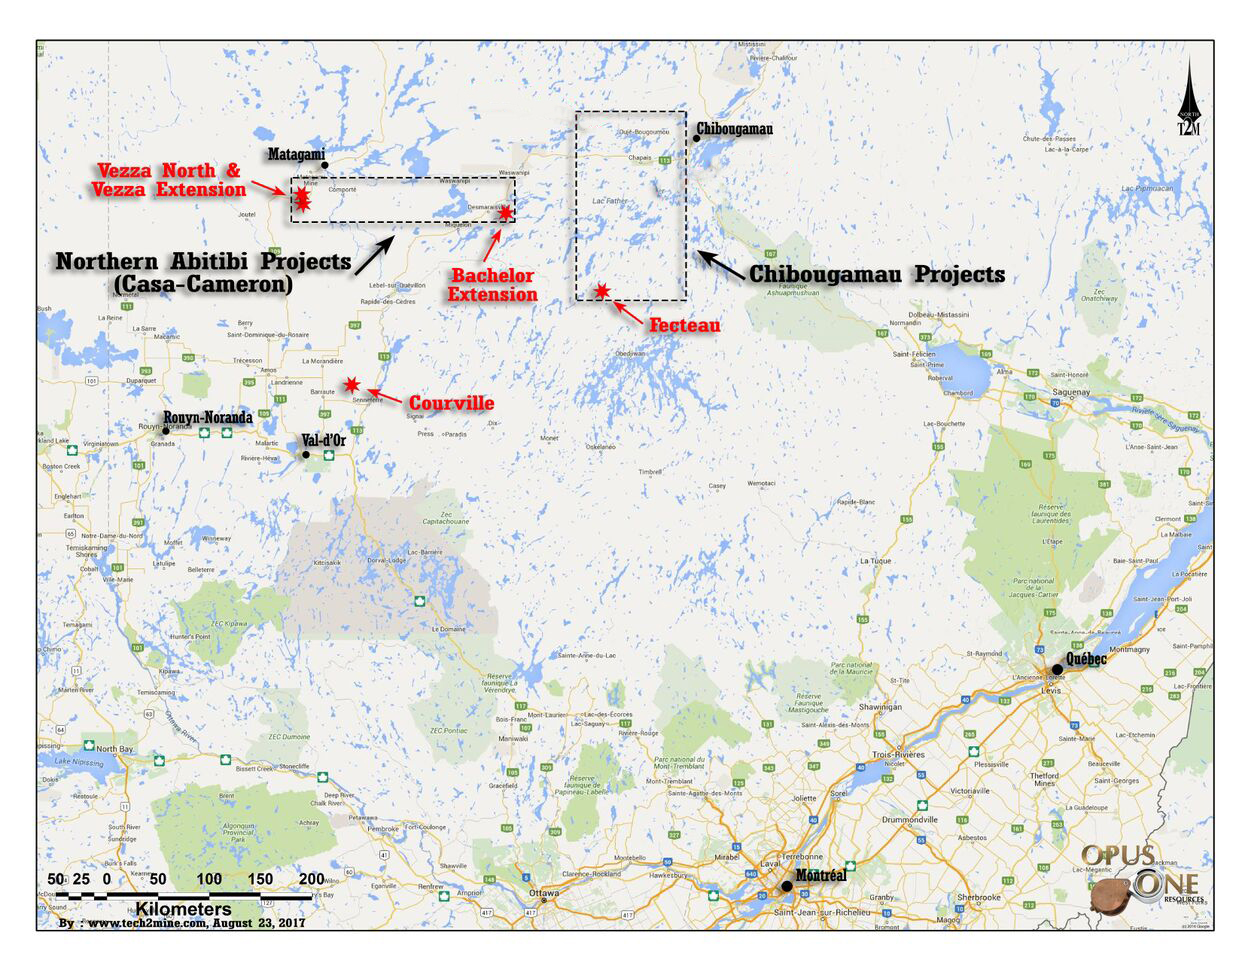 The Chibougamau project is comprised of three gold properties located in mining camps, where previous exploration has identified several gold occurrences